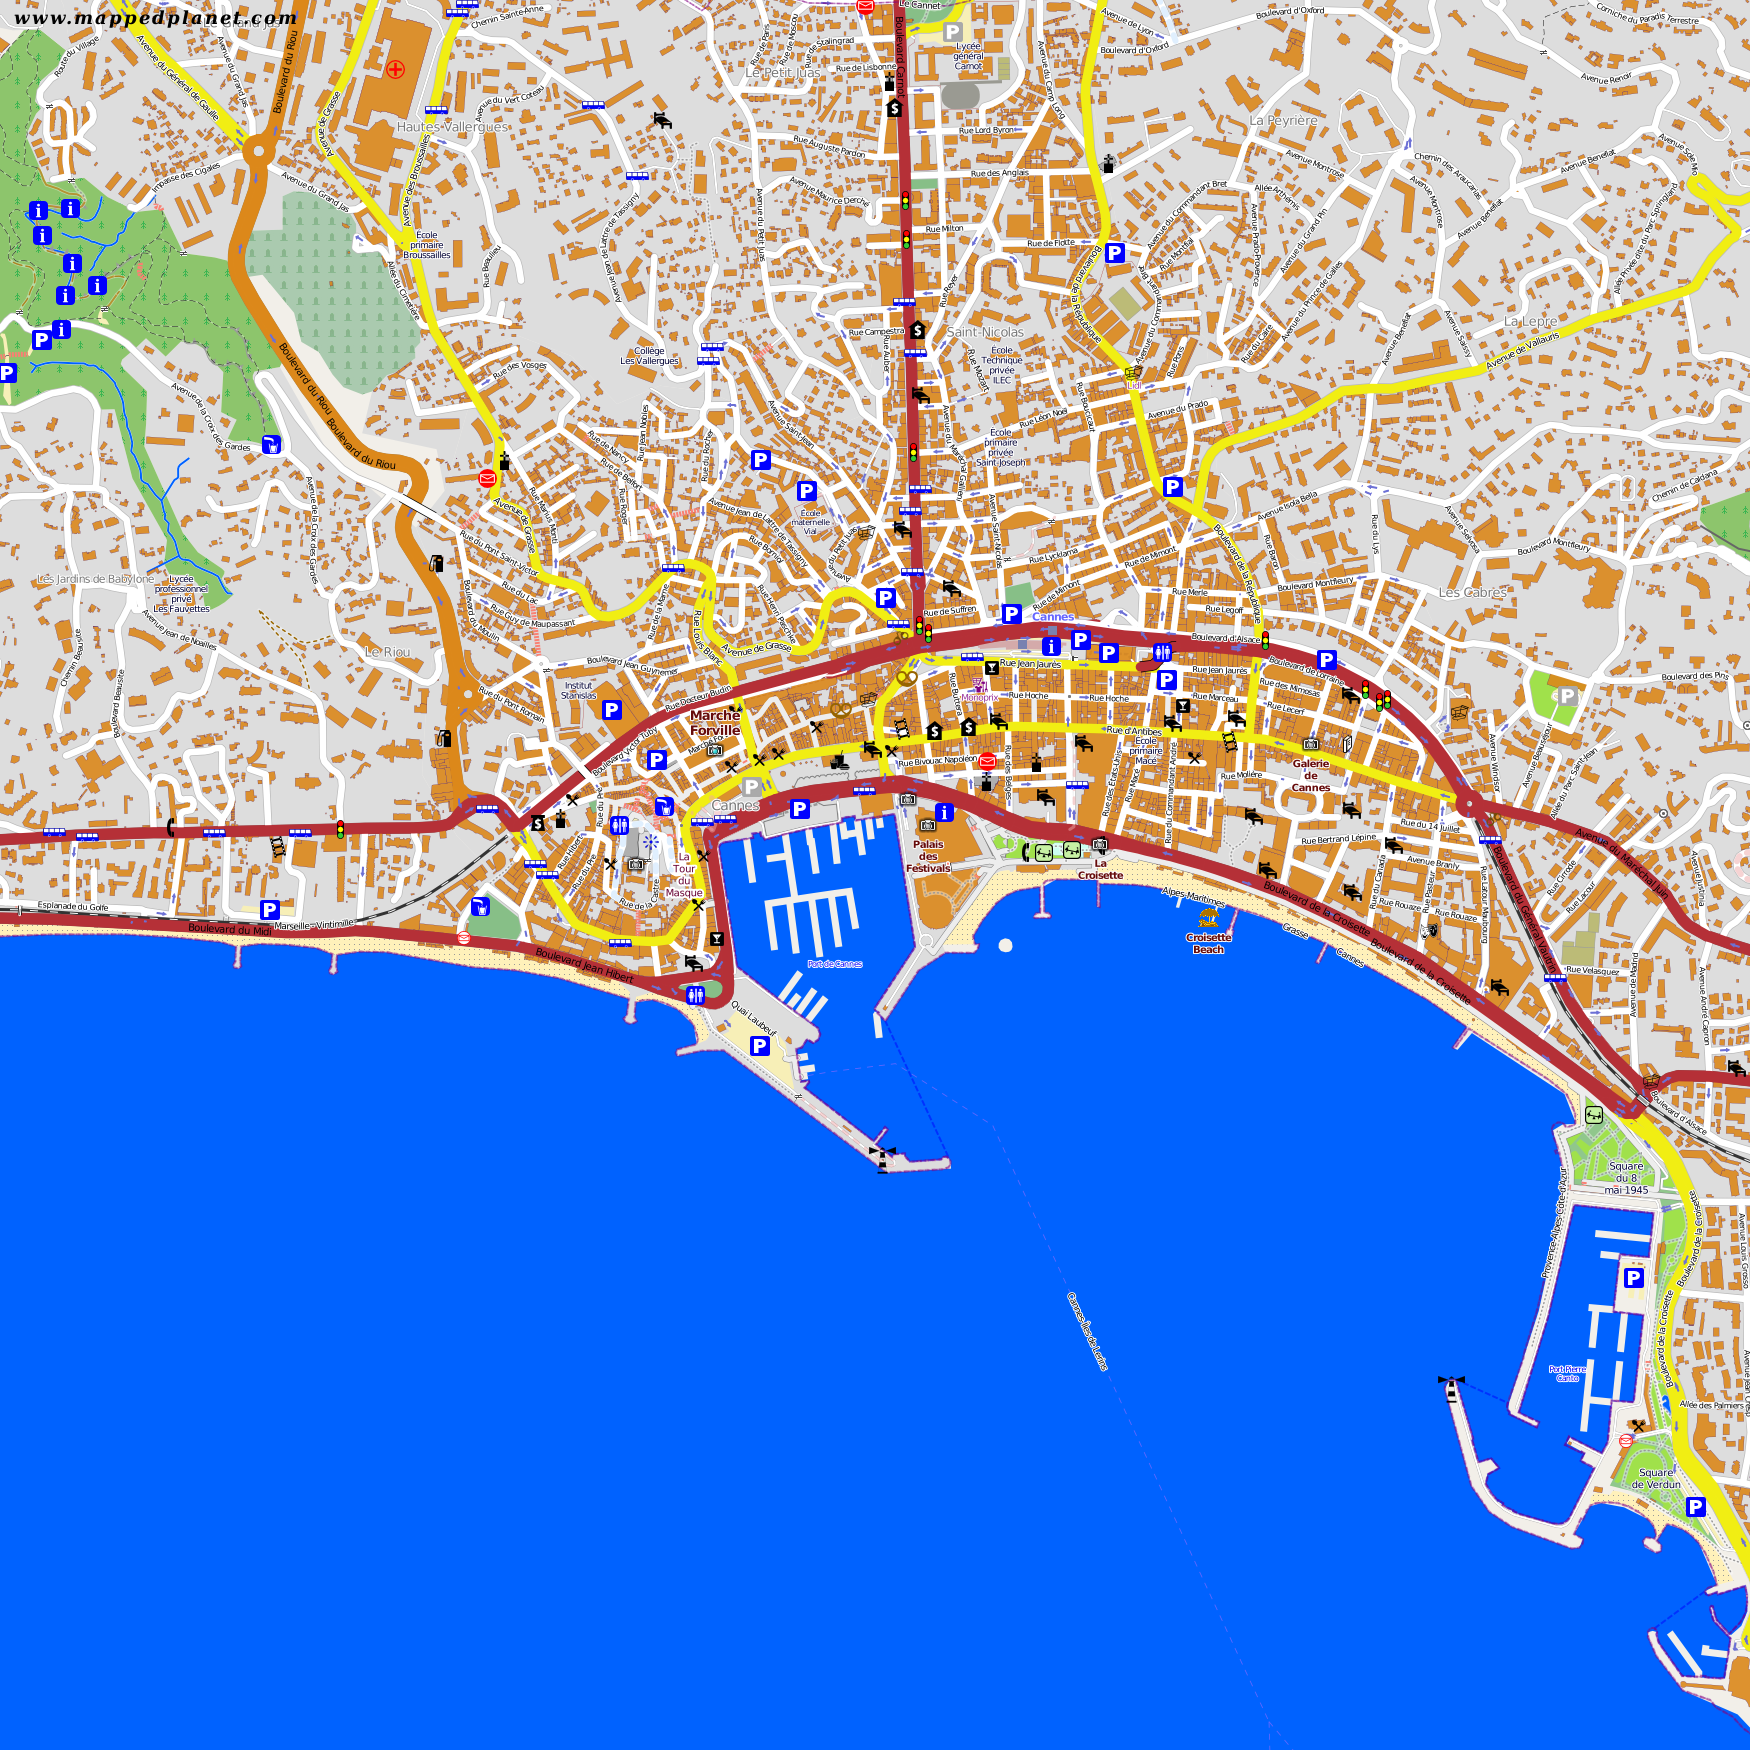 City maps Cannes